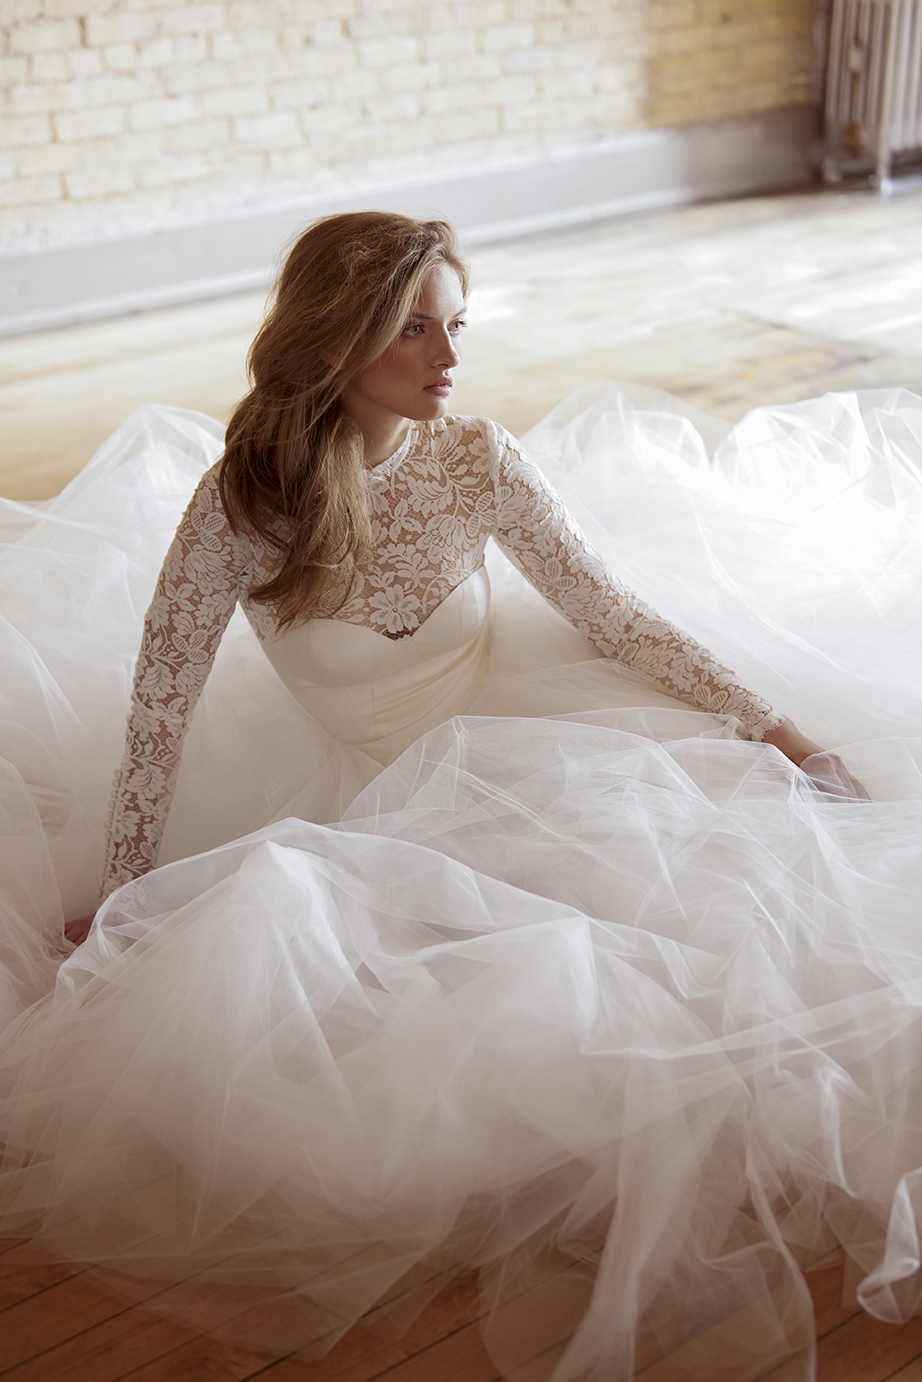 retouched bride sitting on wooden floor in full wedding dress looking contemplative